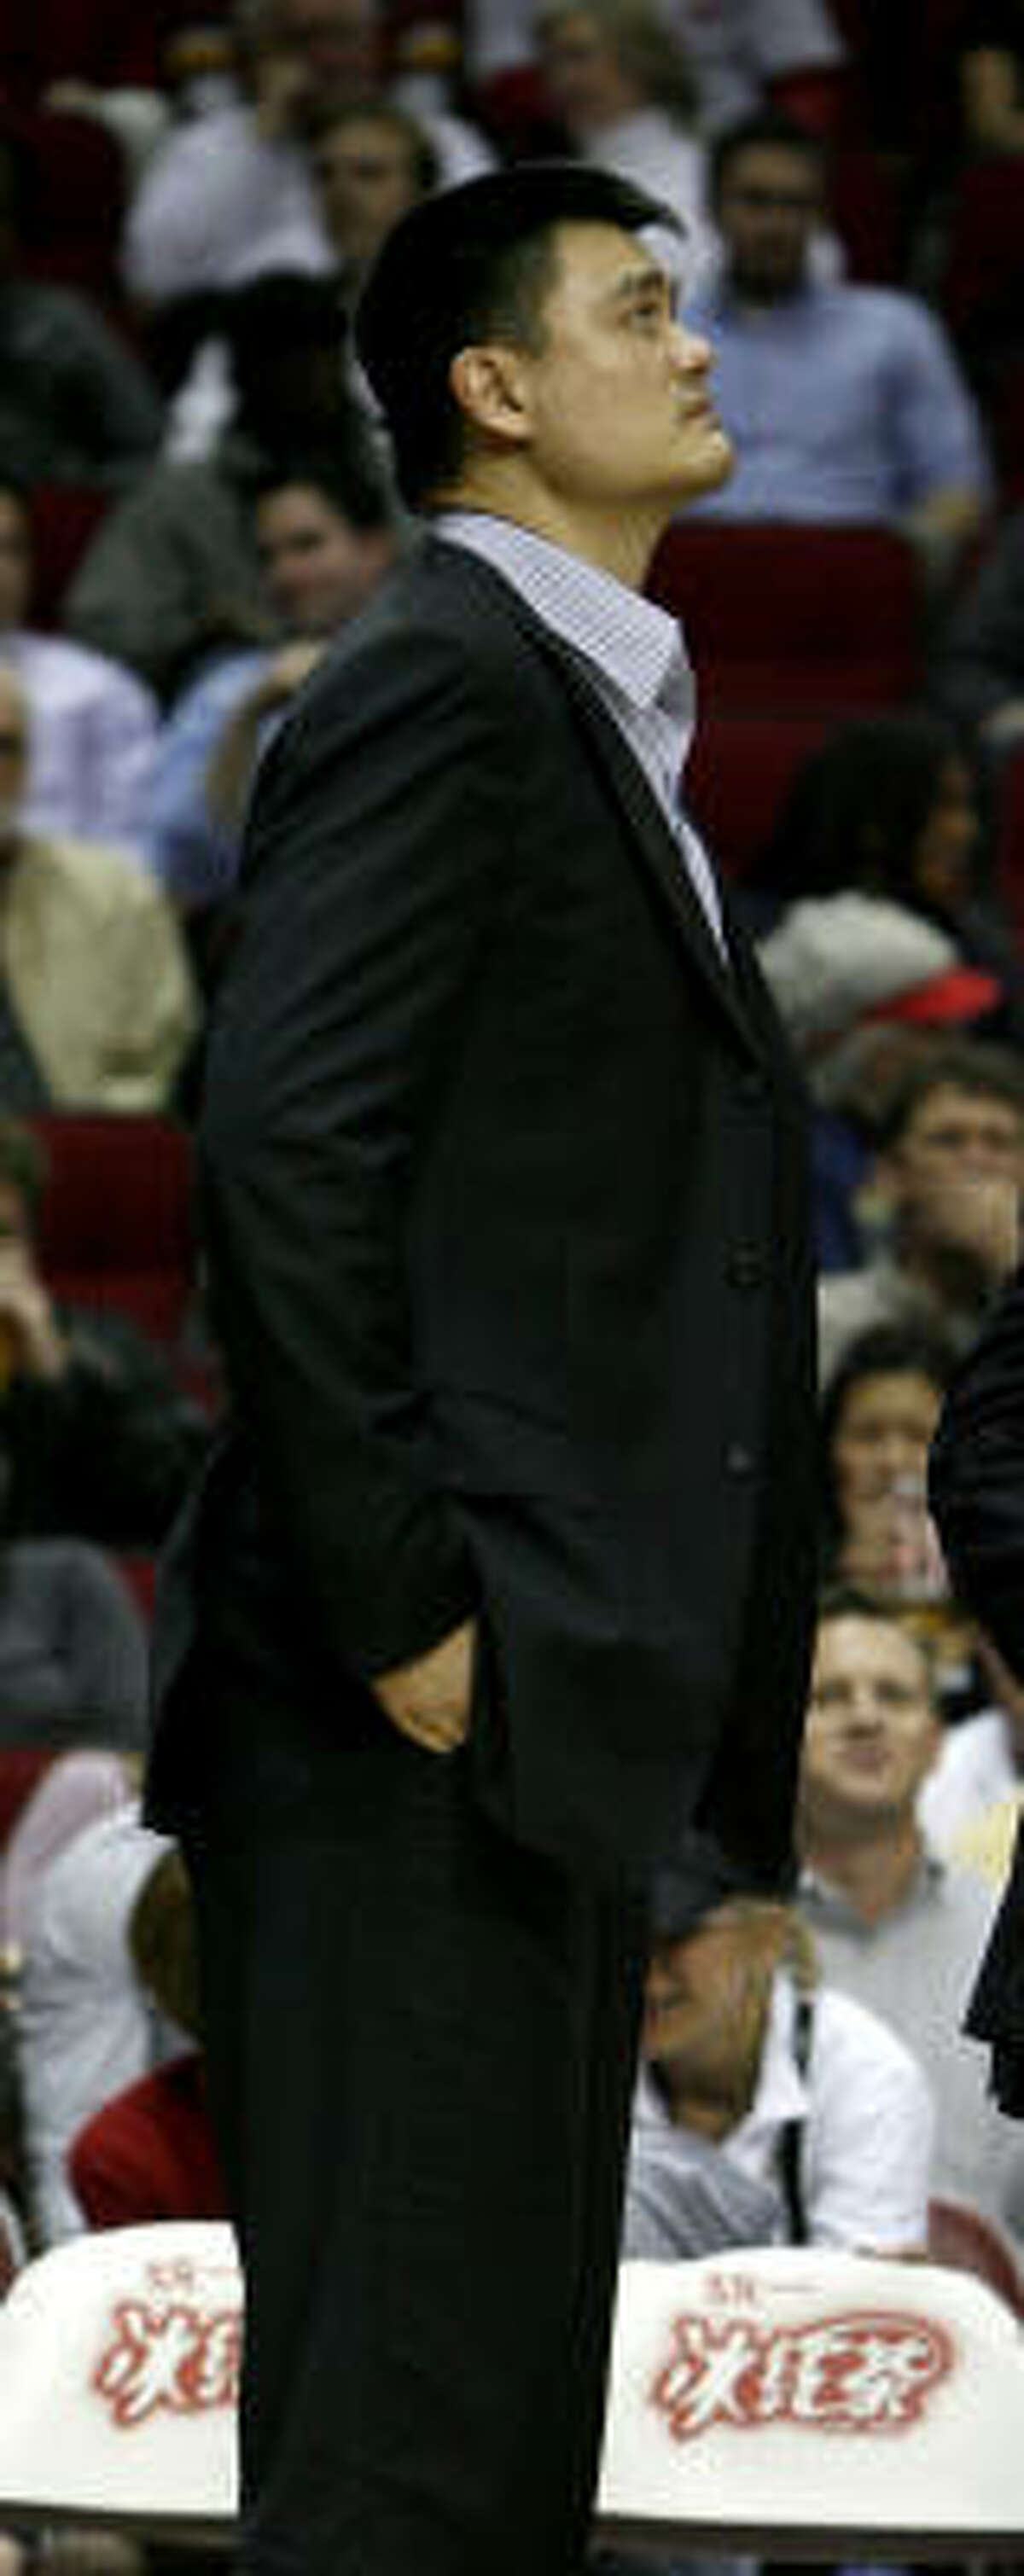 Yao Ming has not played since suffering a stress fracture May 8, 2009 in the Western Conference semifinals.